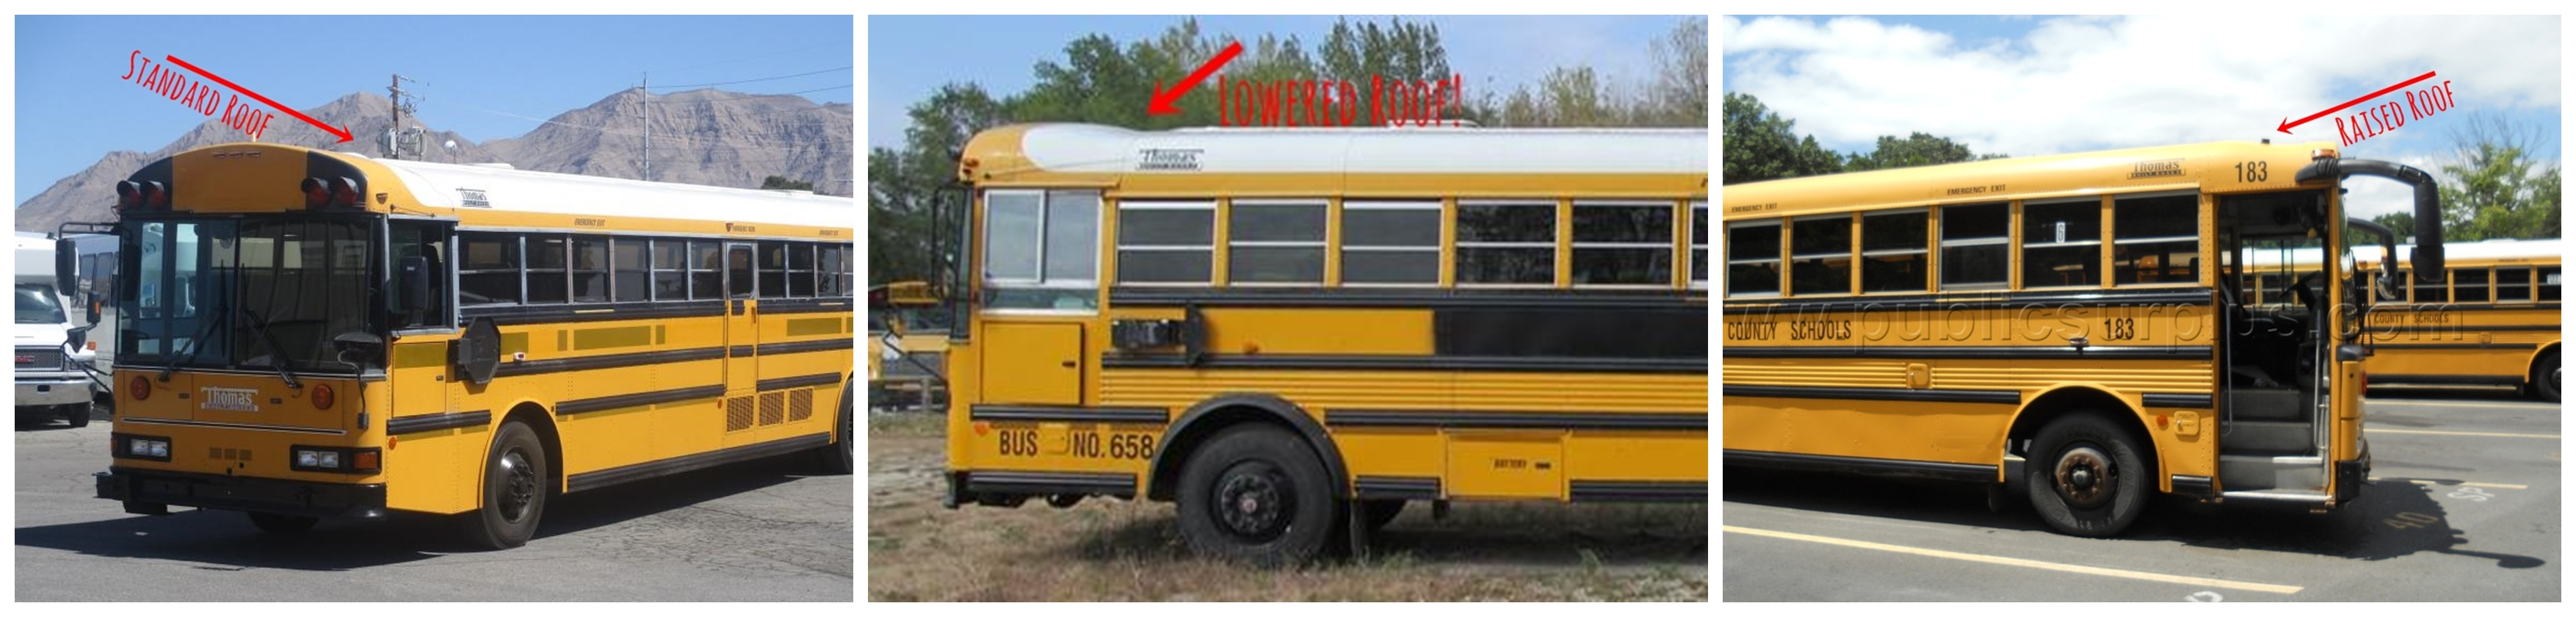 lrg_2001_Thomas_90_Passenger_School_Bus_-_B99989_-_1-horz